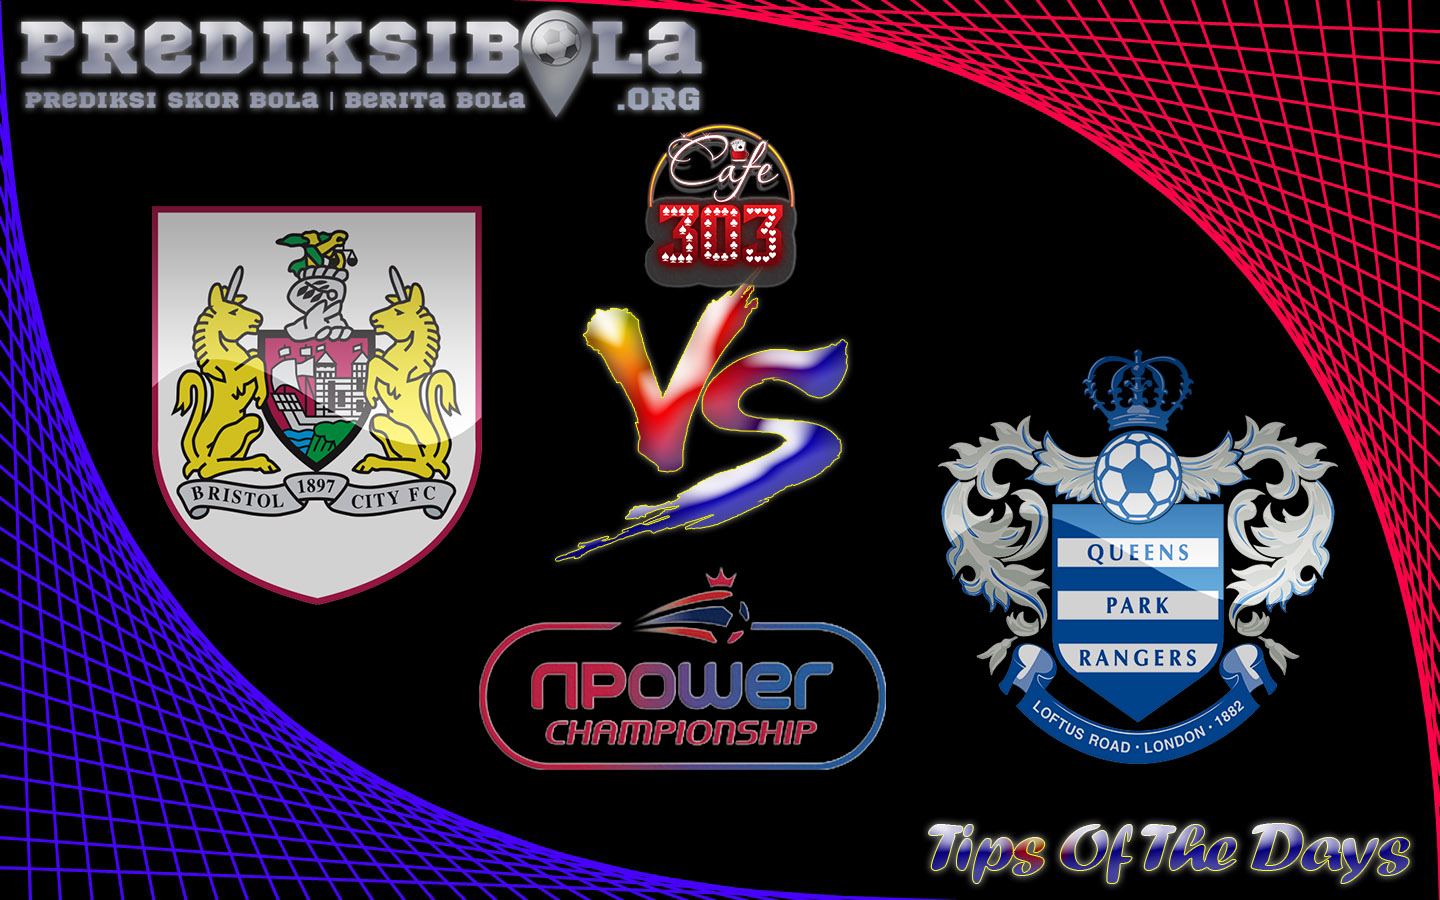 Prediksi Skor Bristol City Vs Queen Park Rangers 14 April 2017